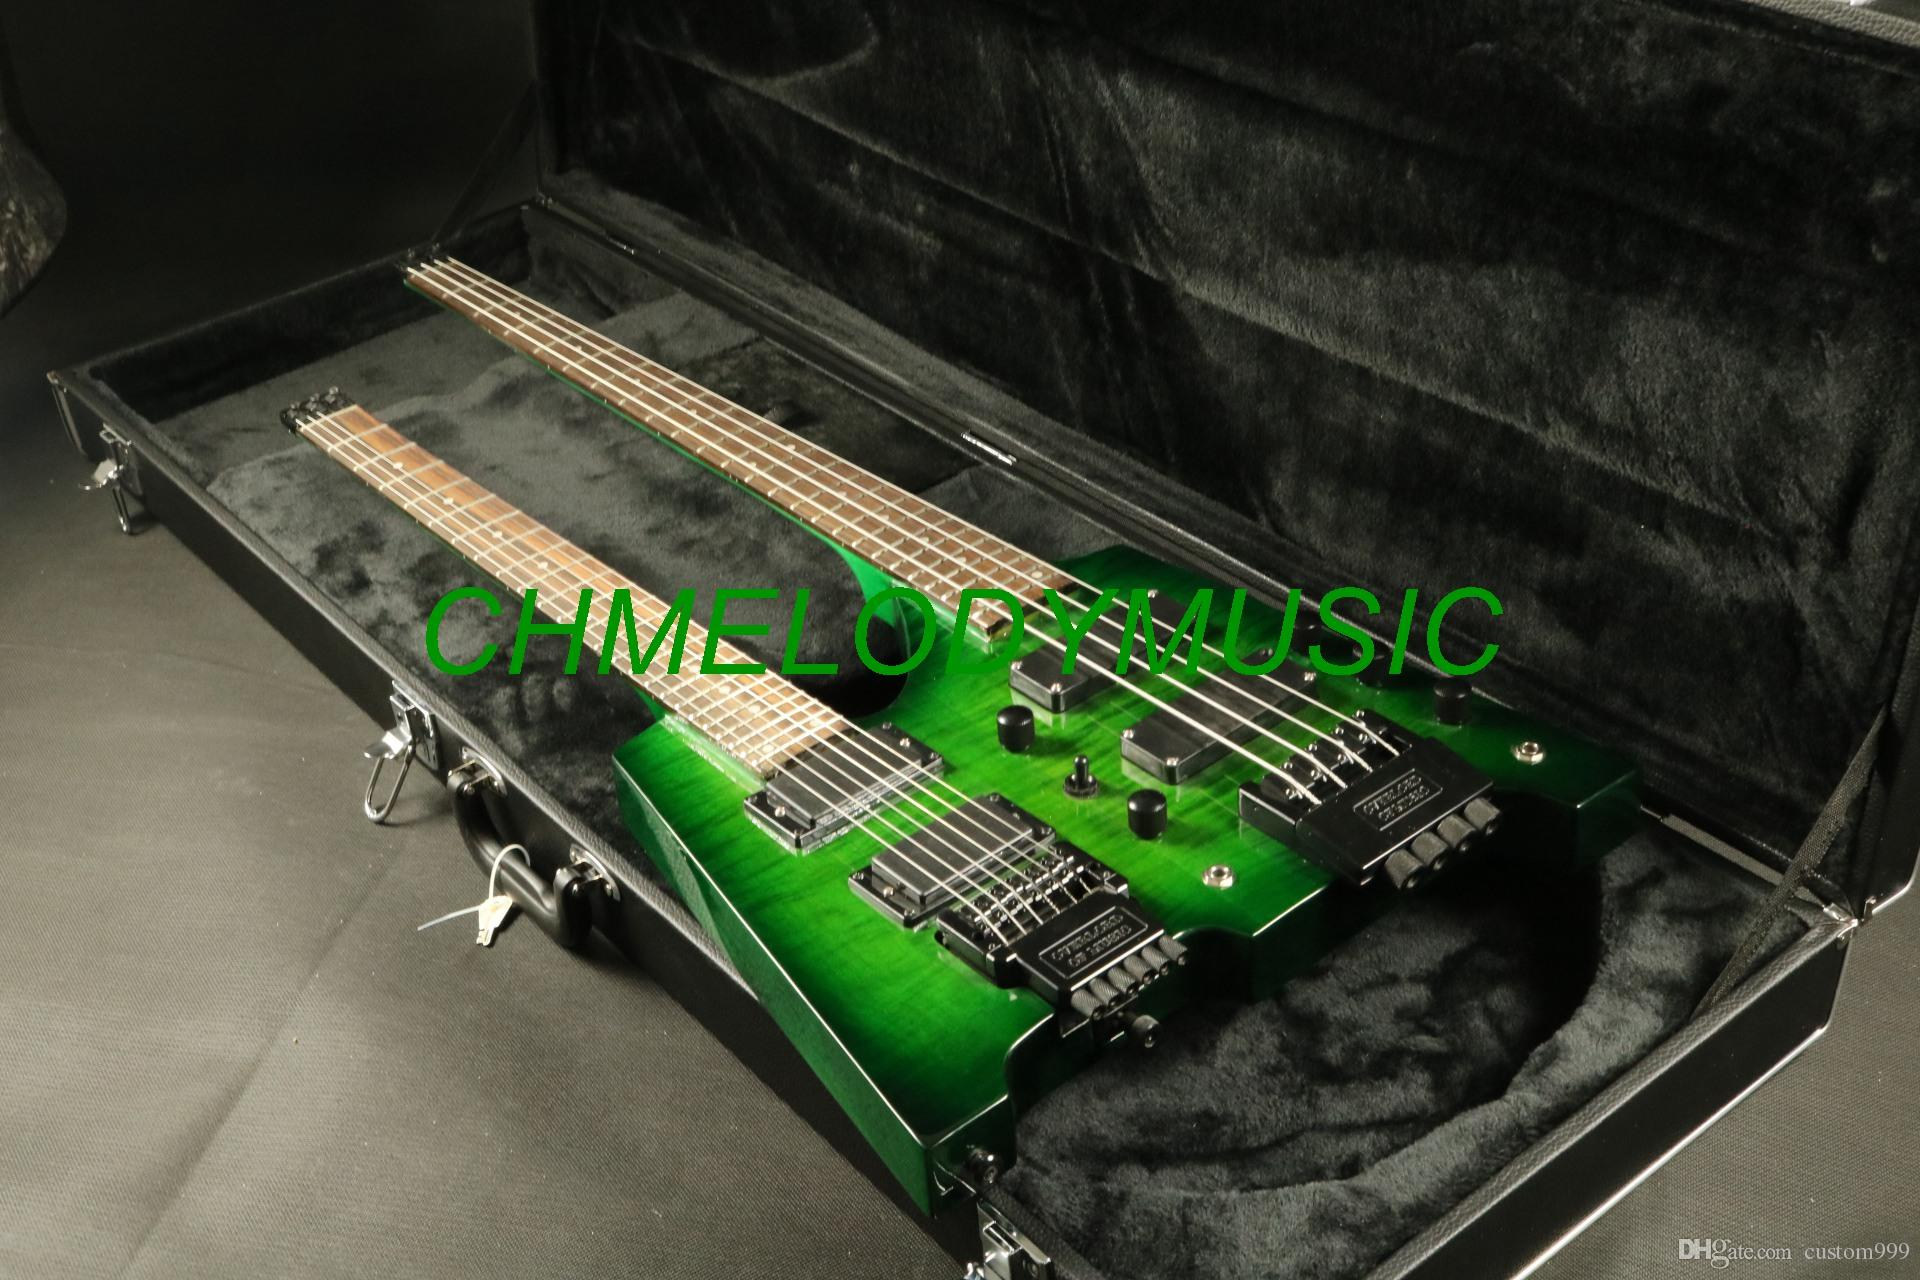 Sensational Chmelodymusic Lzeal Green Color Double Neck Headless Electric Guitar Wiring Cloud Intelaidewilluminateatxorg